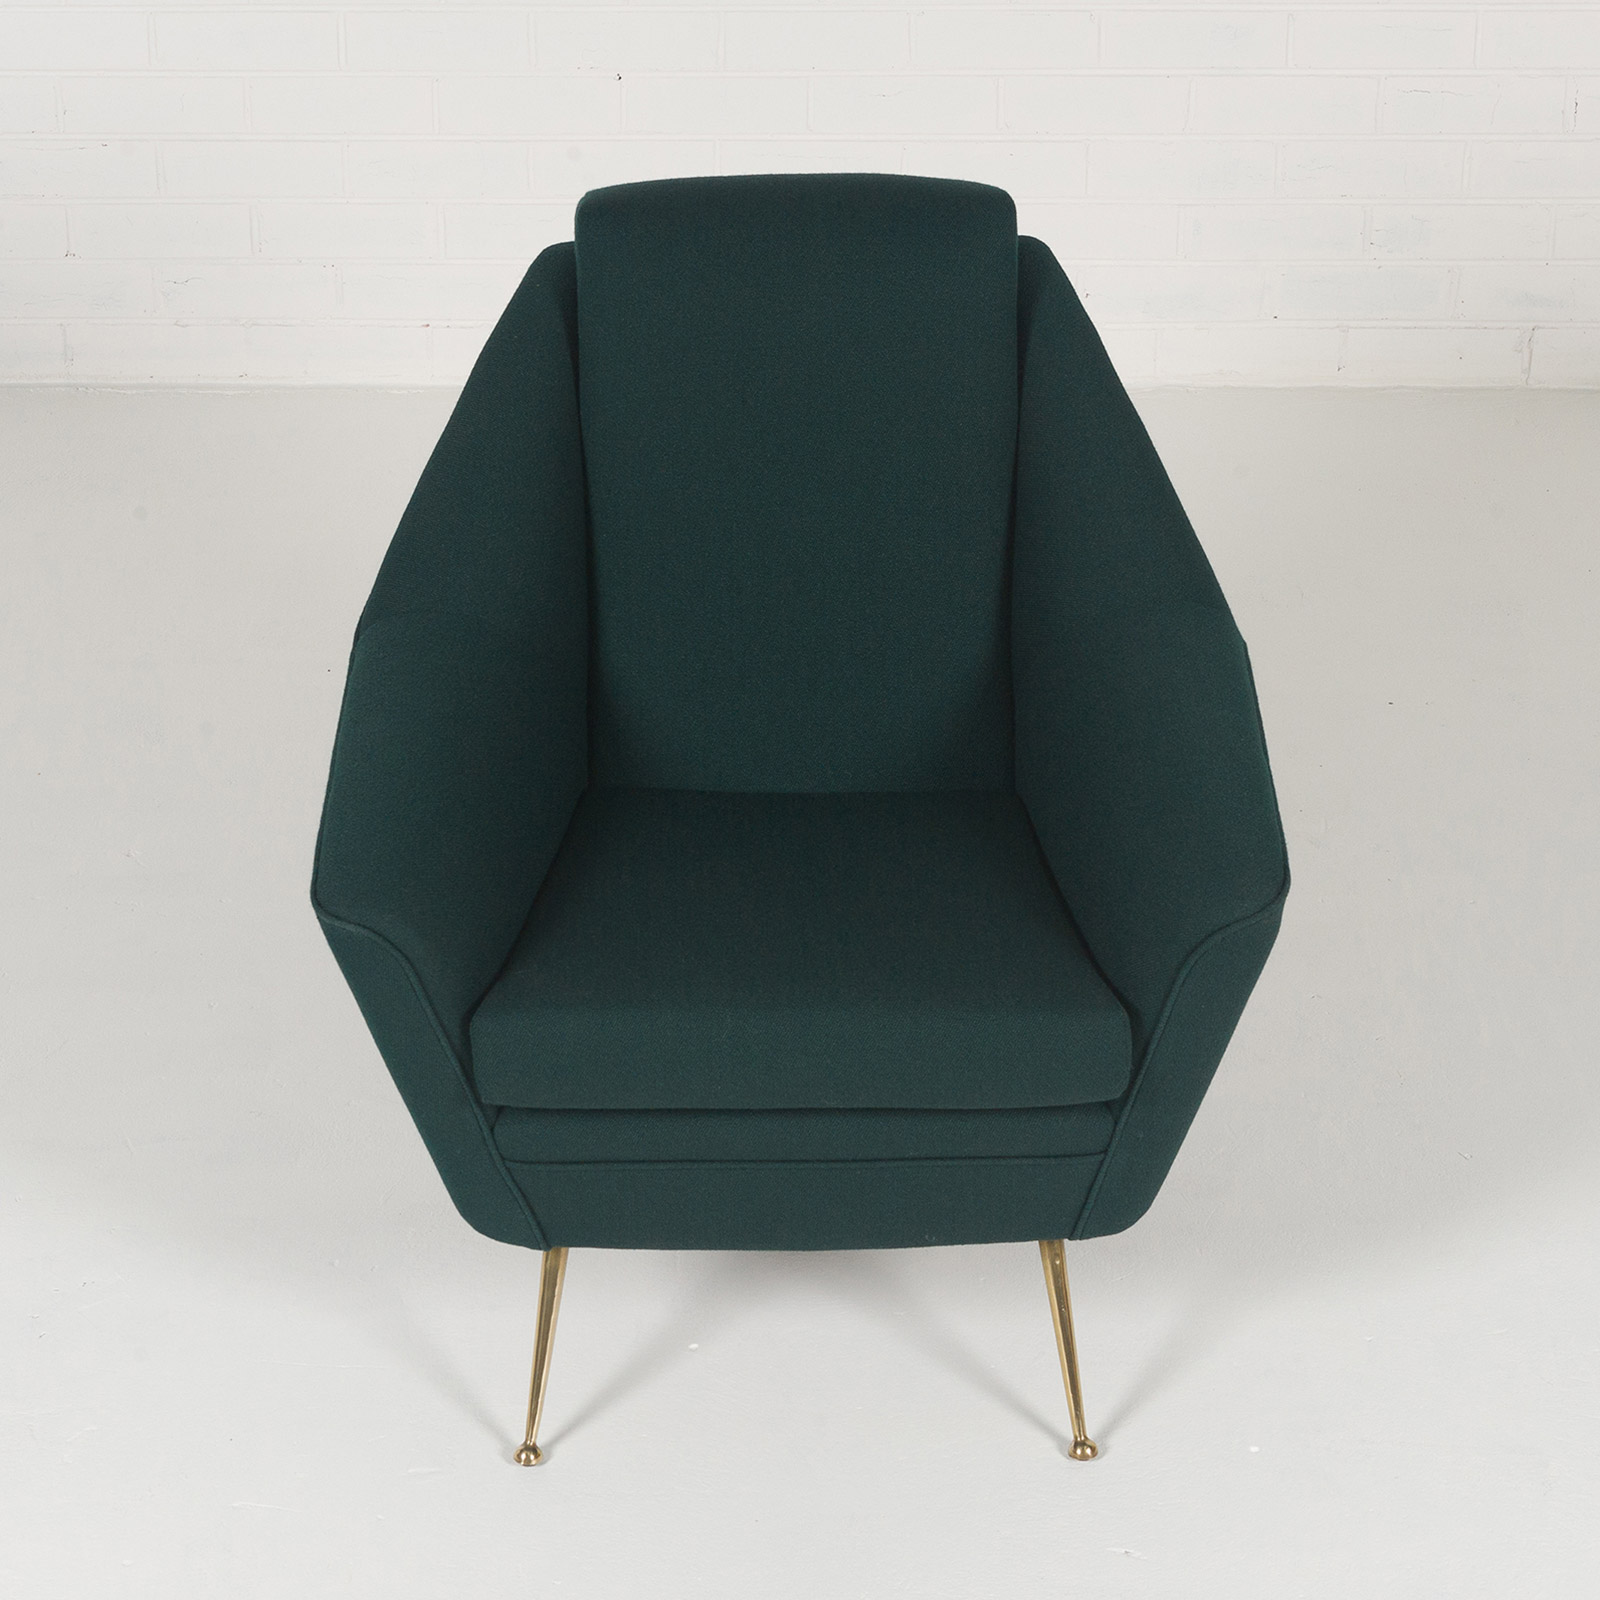 Armchair With Brass Legs And New Kvadart Upholstery 1950s Italy 03